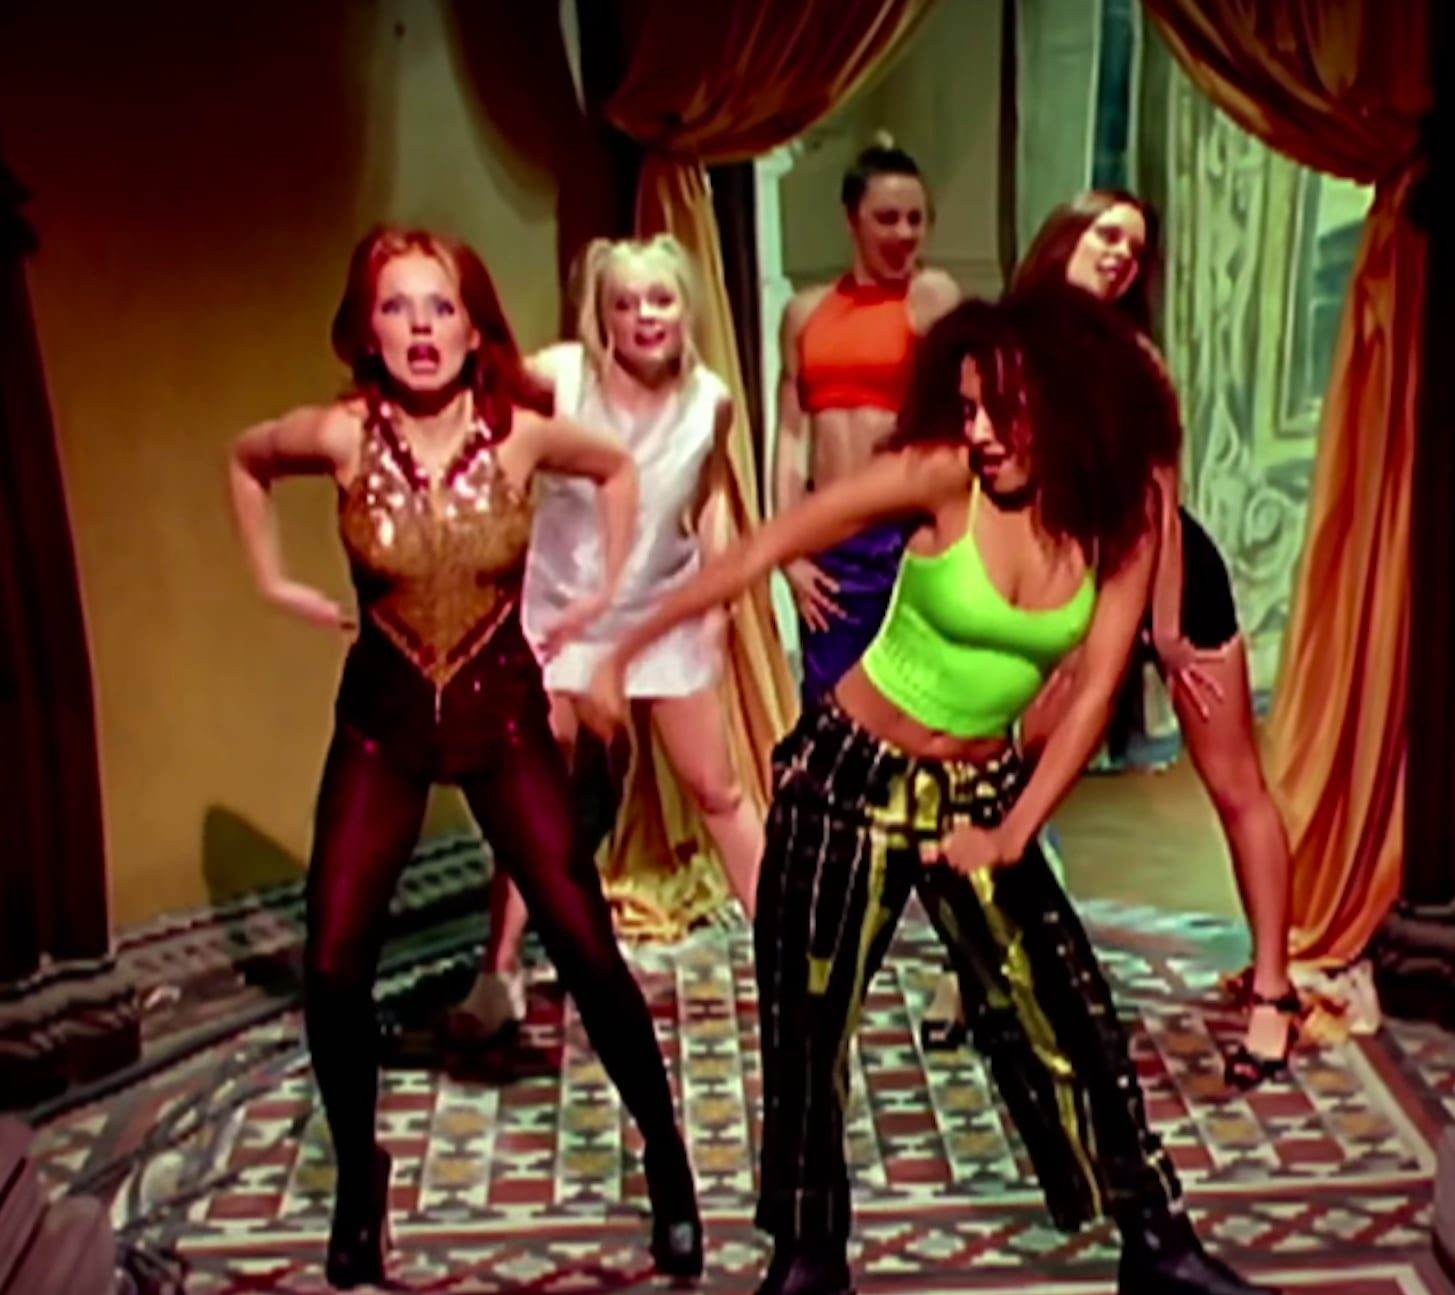 geri horner emma stone auction dresses to support beirut e1624004778973 Zig-A-Zig-Ah! It's 25 Fascinating Facts About The Spice Girls!